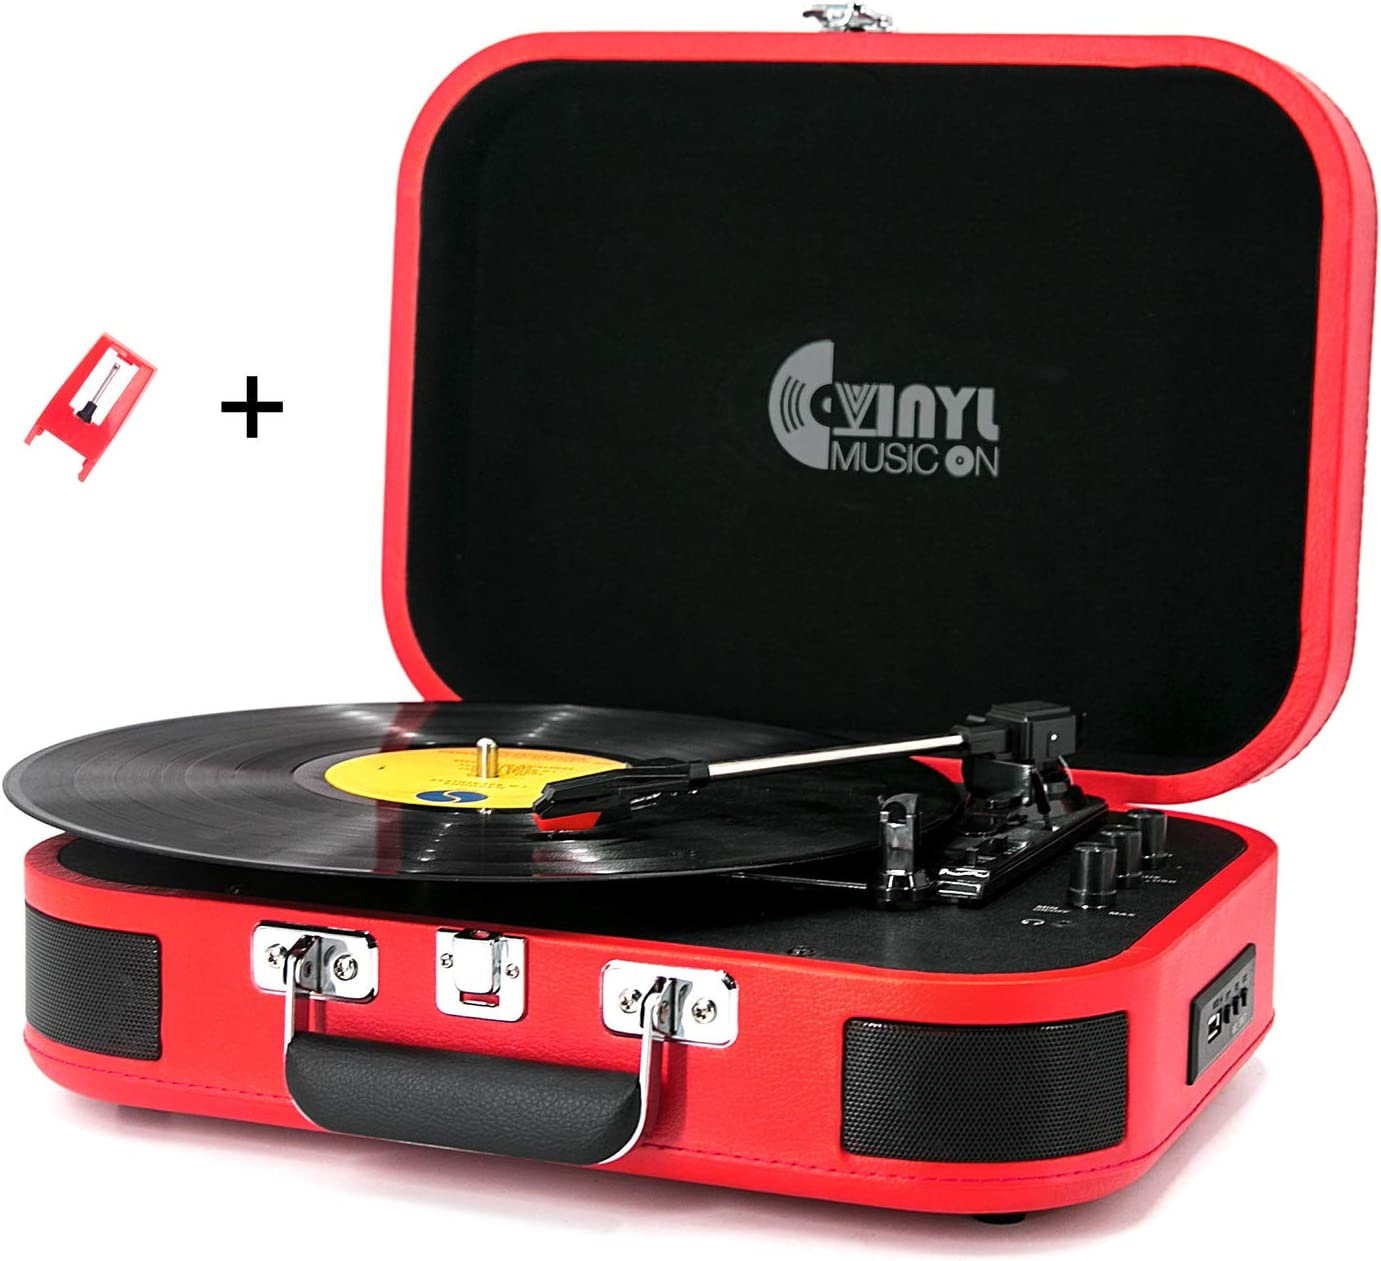 USB Bluetooth Record Player with Stereo Speakers,3 Speed Briefcase Turntable with USB Play&Encoding, Pitch Control and RCA Output&Aux Input,Red